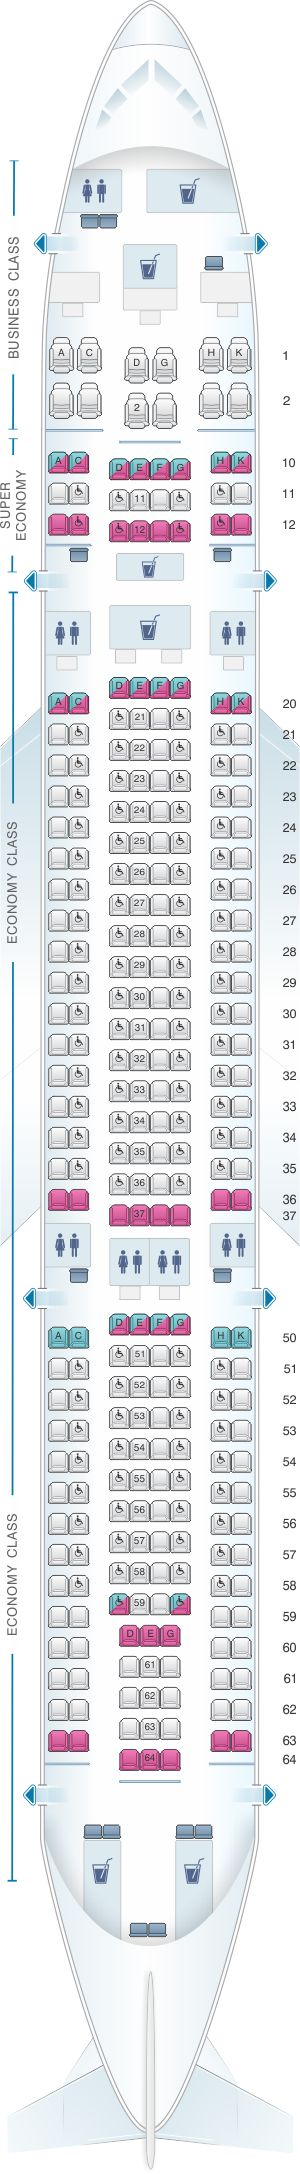 Seat Map SriLankan Airlines Airbus A330-200 Config. 2